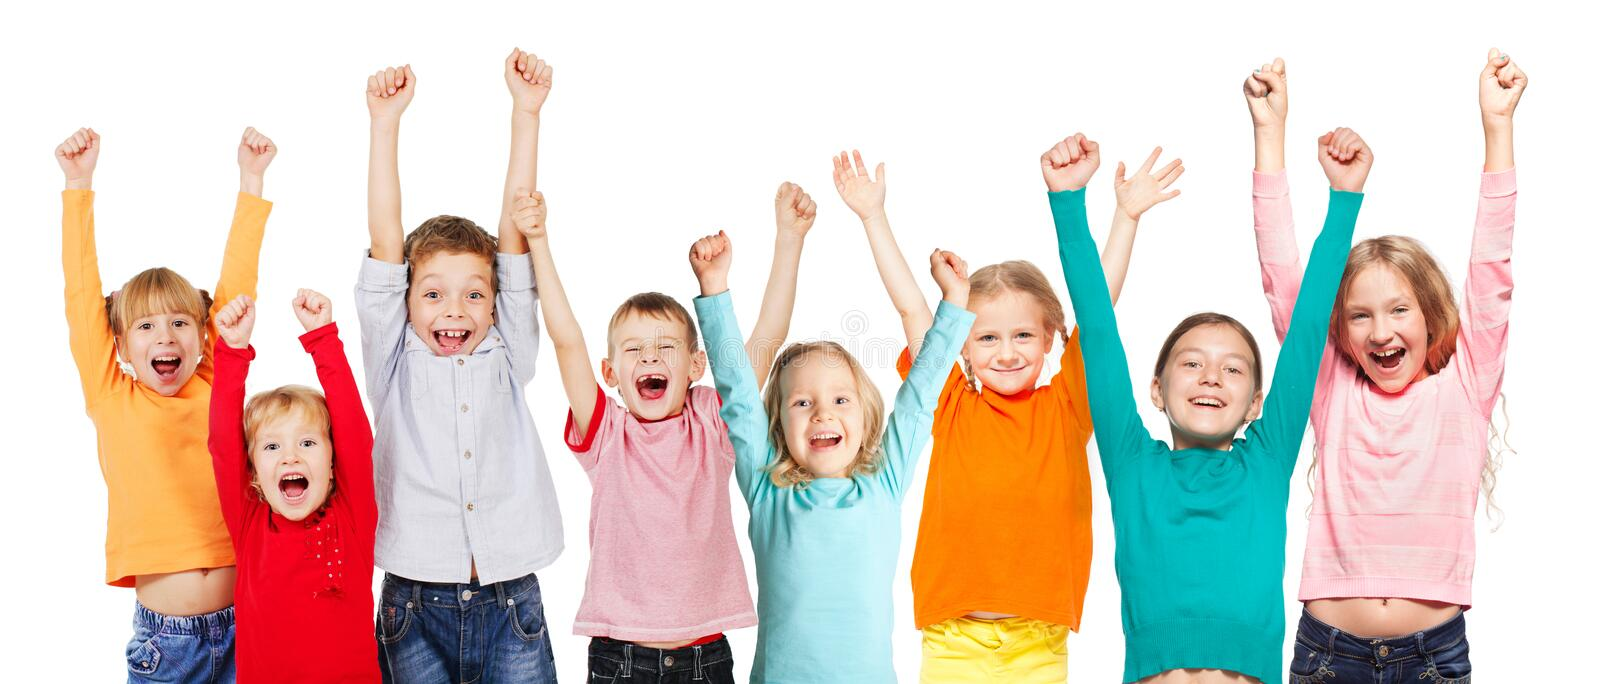 Happiness group children with their hands up royalty free stock photos